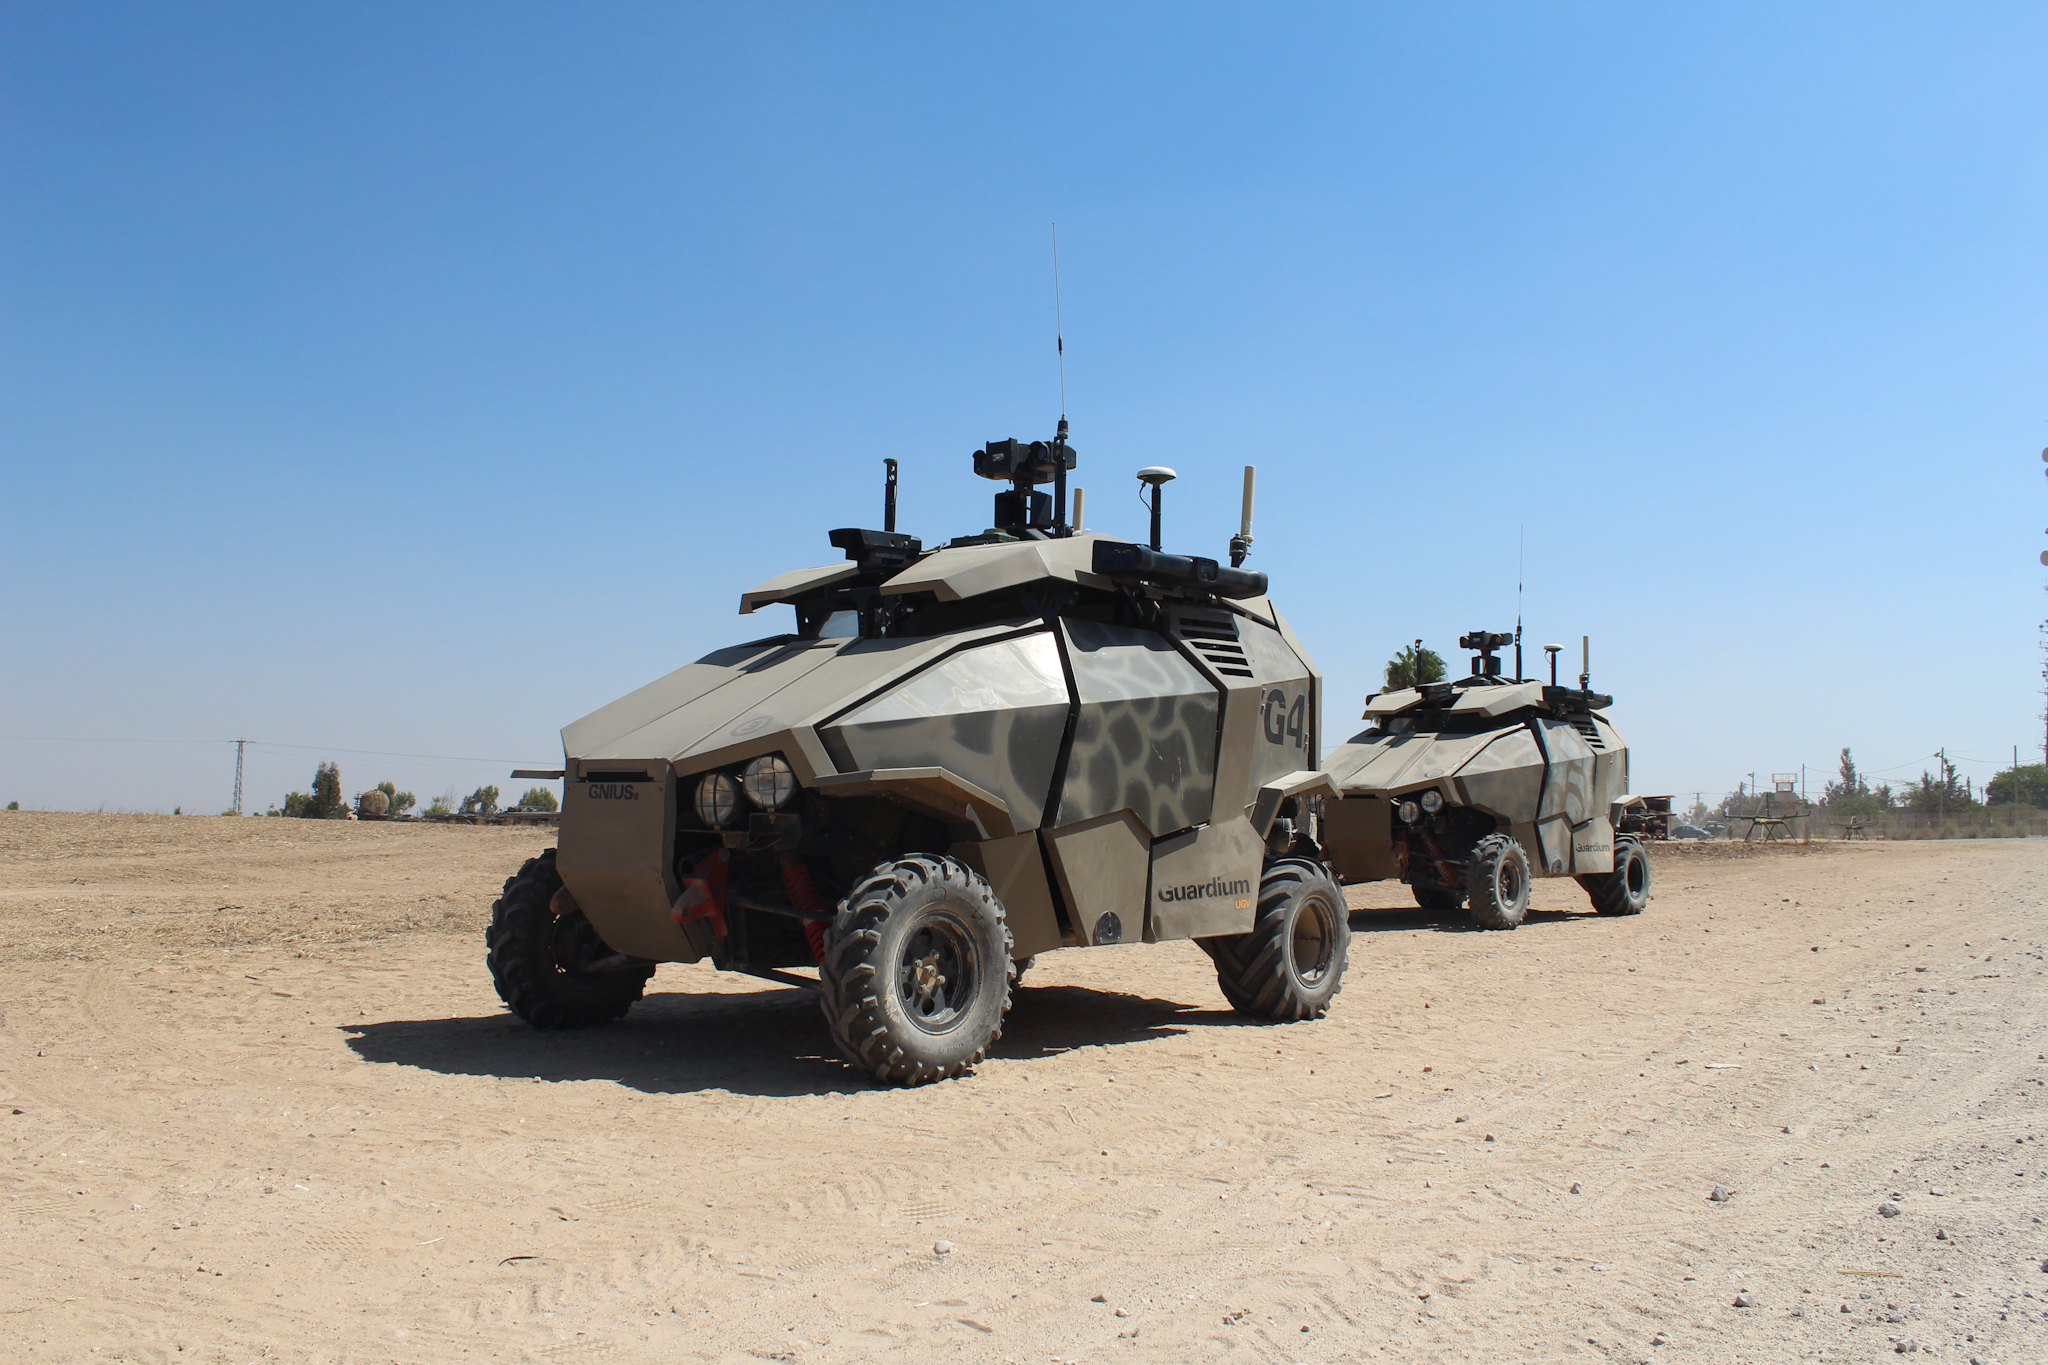 Manly Aww: Israel army guardium, unmanned ground vehicle ...